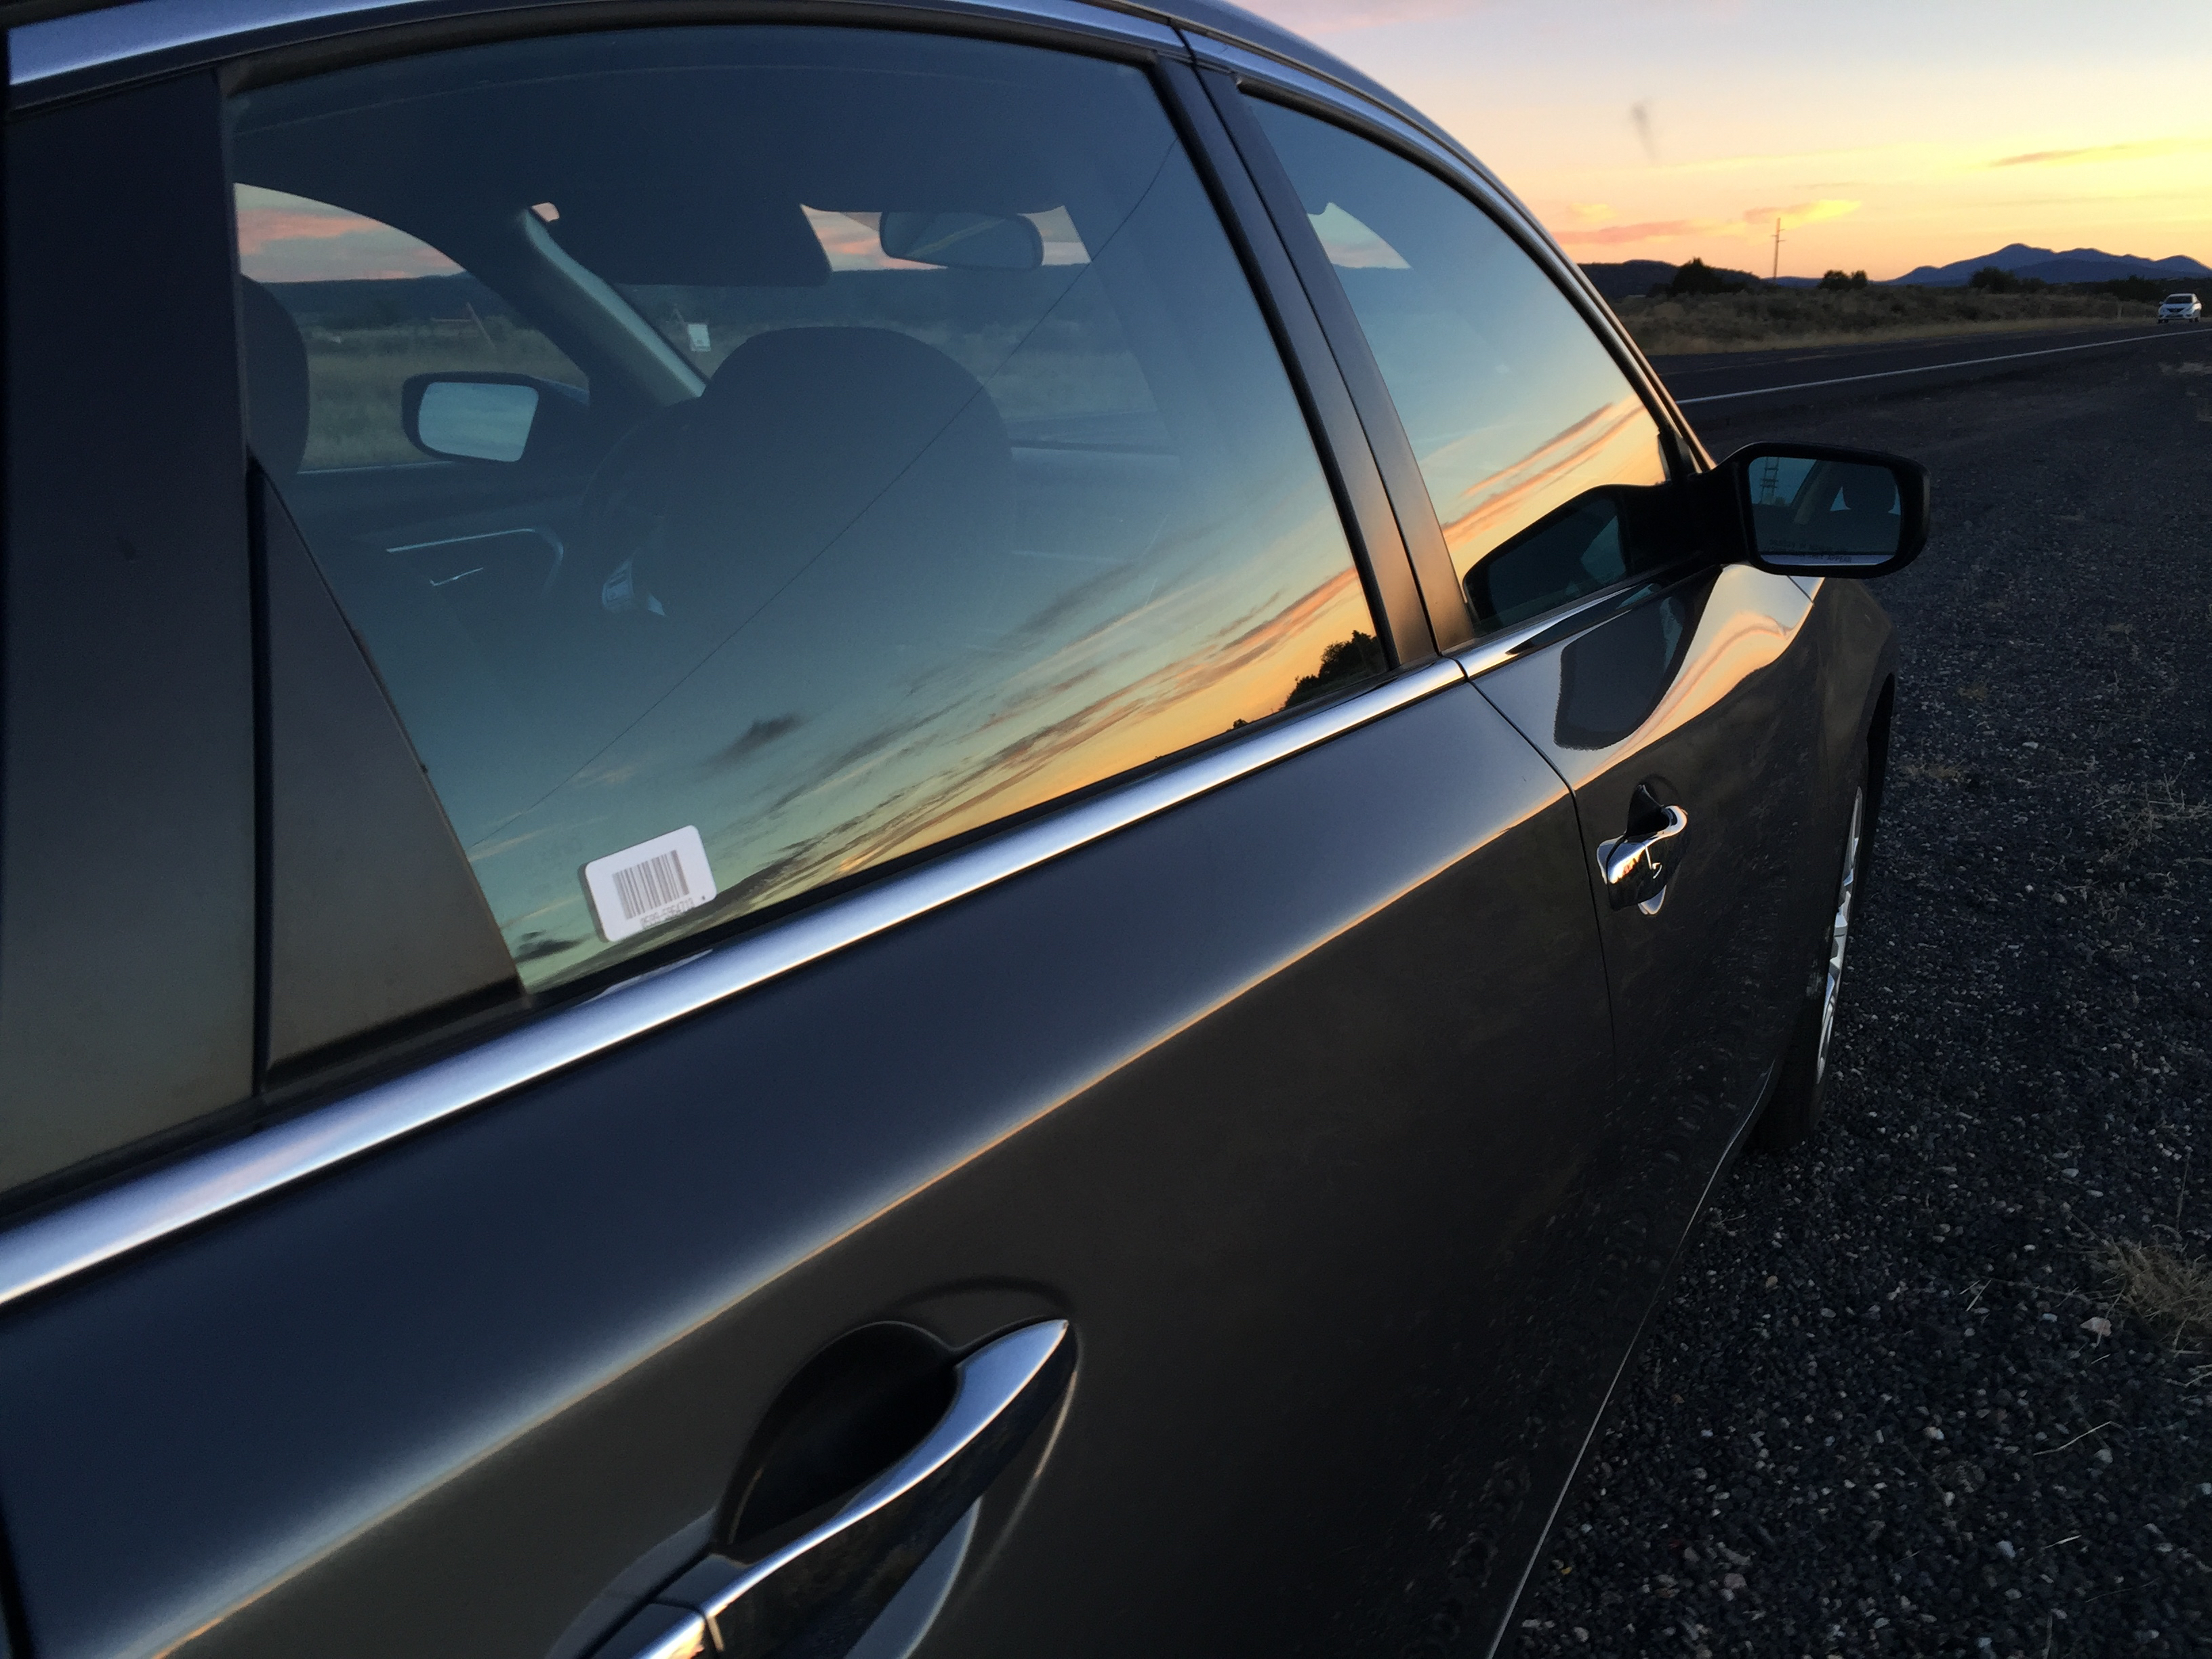 img_2164-nissan-altima-hire-car-with-sunset-reflection